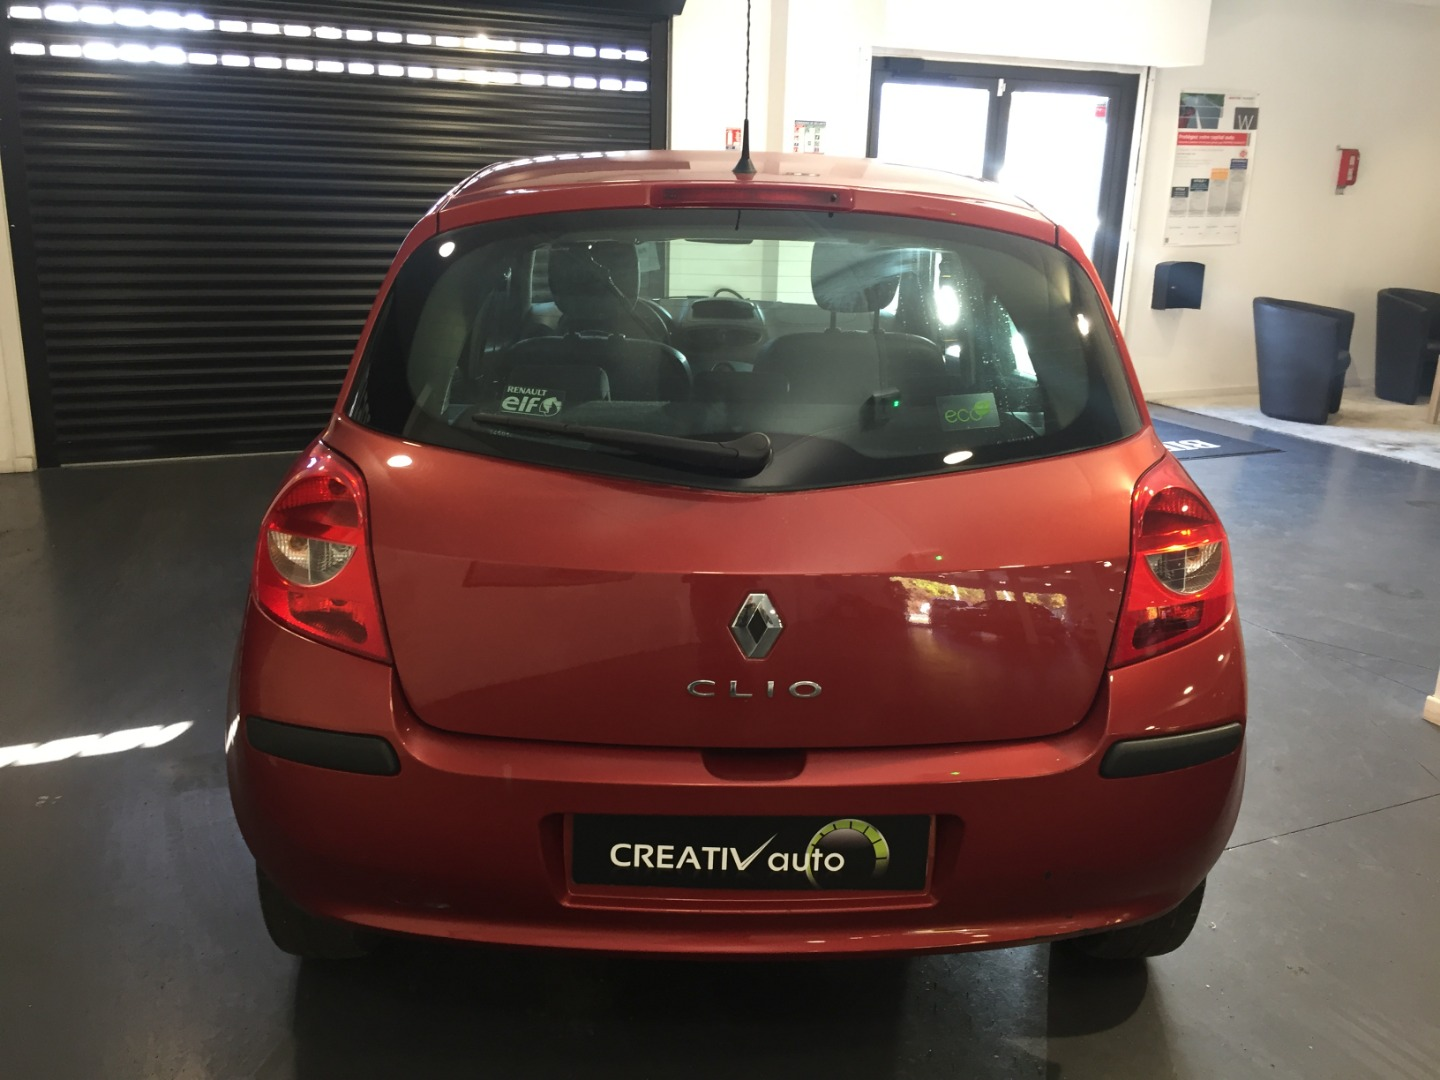 Renault Renault Clio 3 1.2 75CH EXTREME / 2008 / 136000 km / Essence / 5290 €